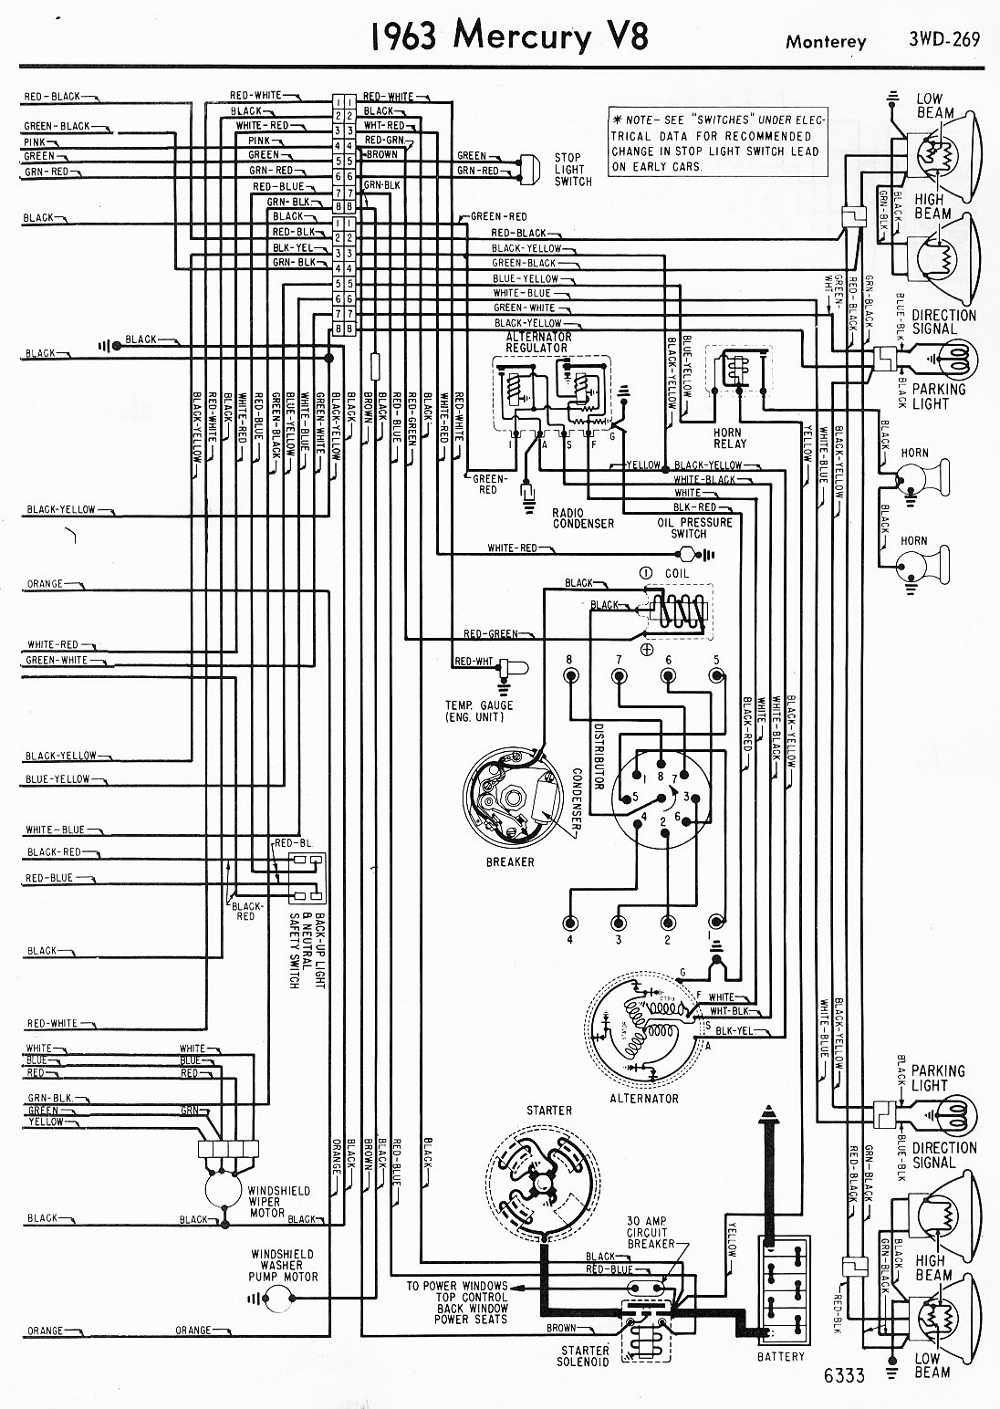 Wiring Diagrams 911: December 2011